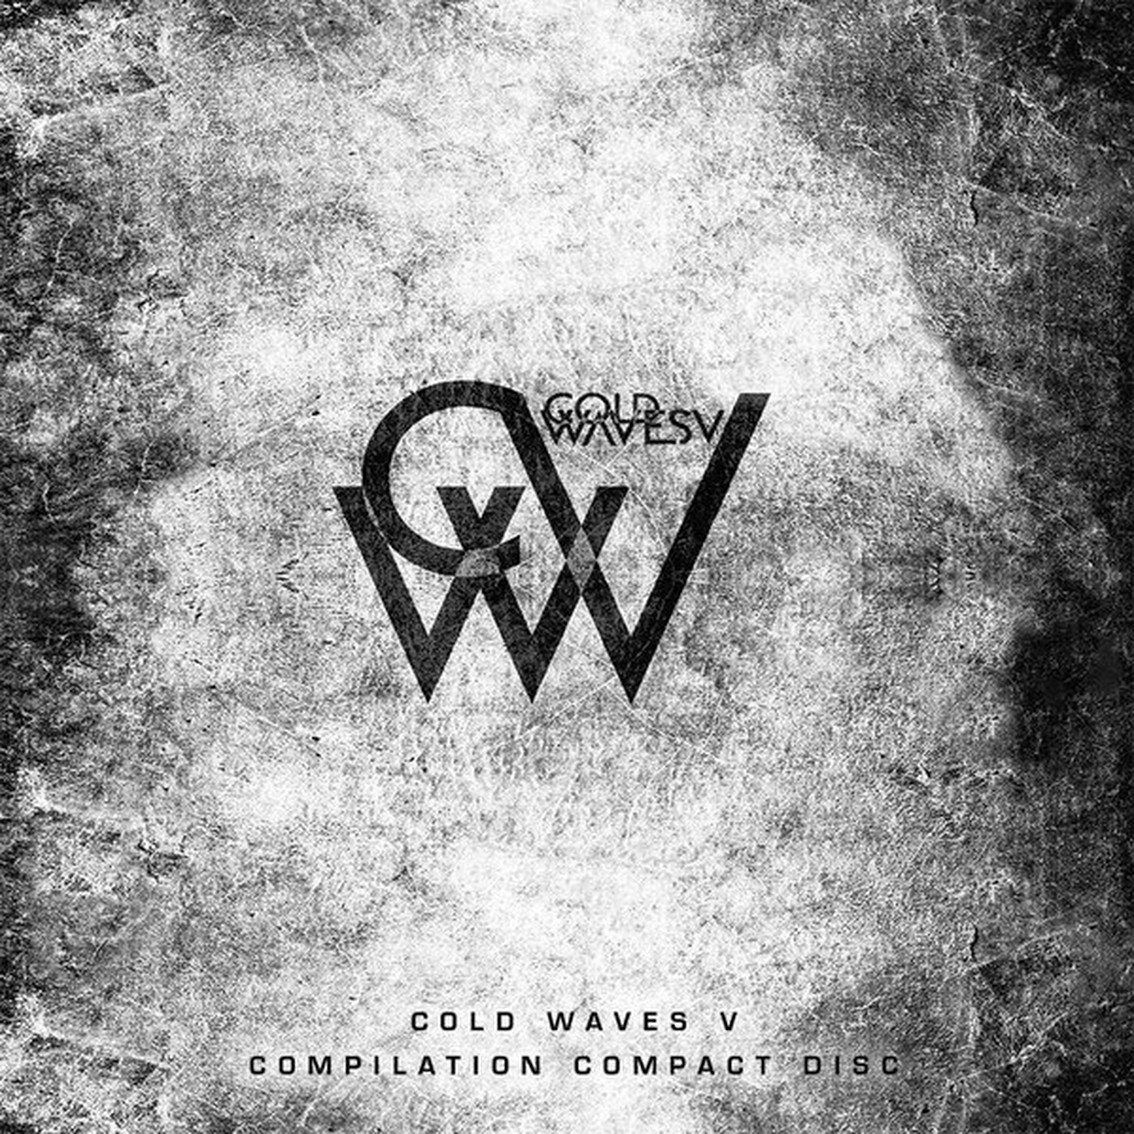 5th volume in 'Coldwaves' series available (and it looks great!)